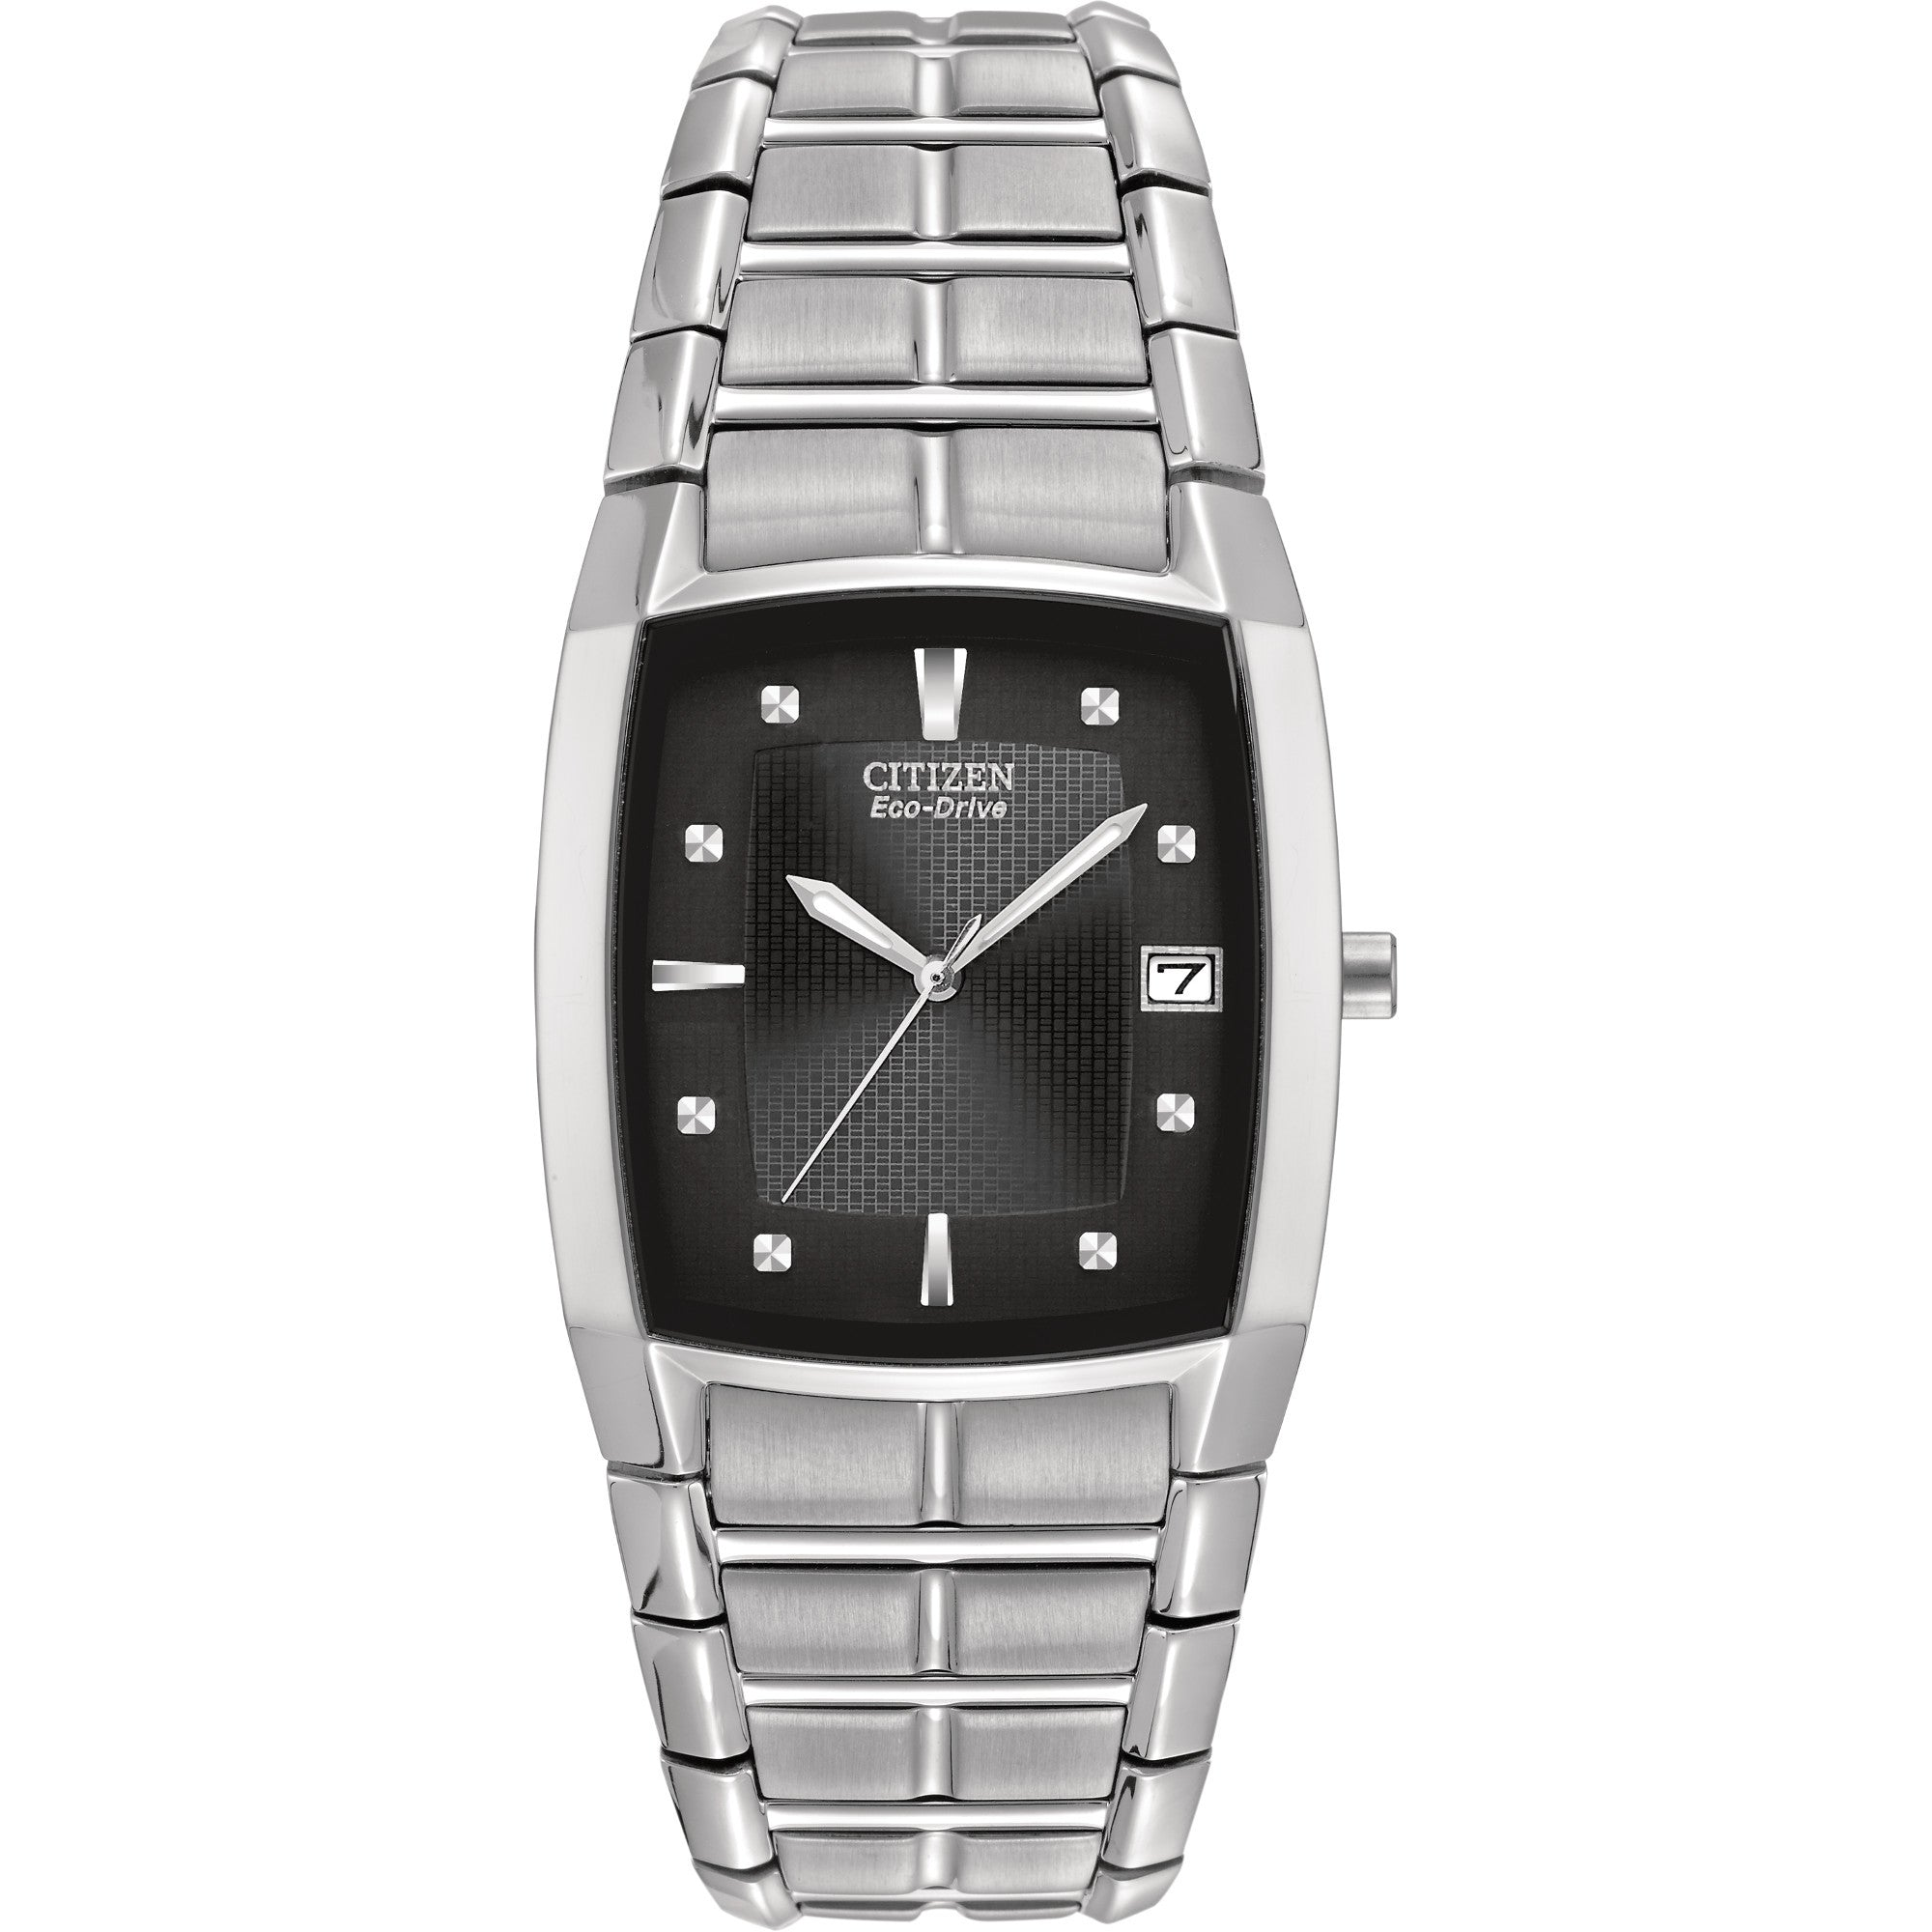 CITIZEN MEN'S BRACELET BM6550-58E